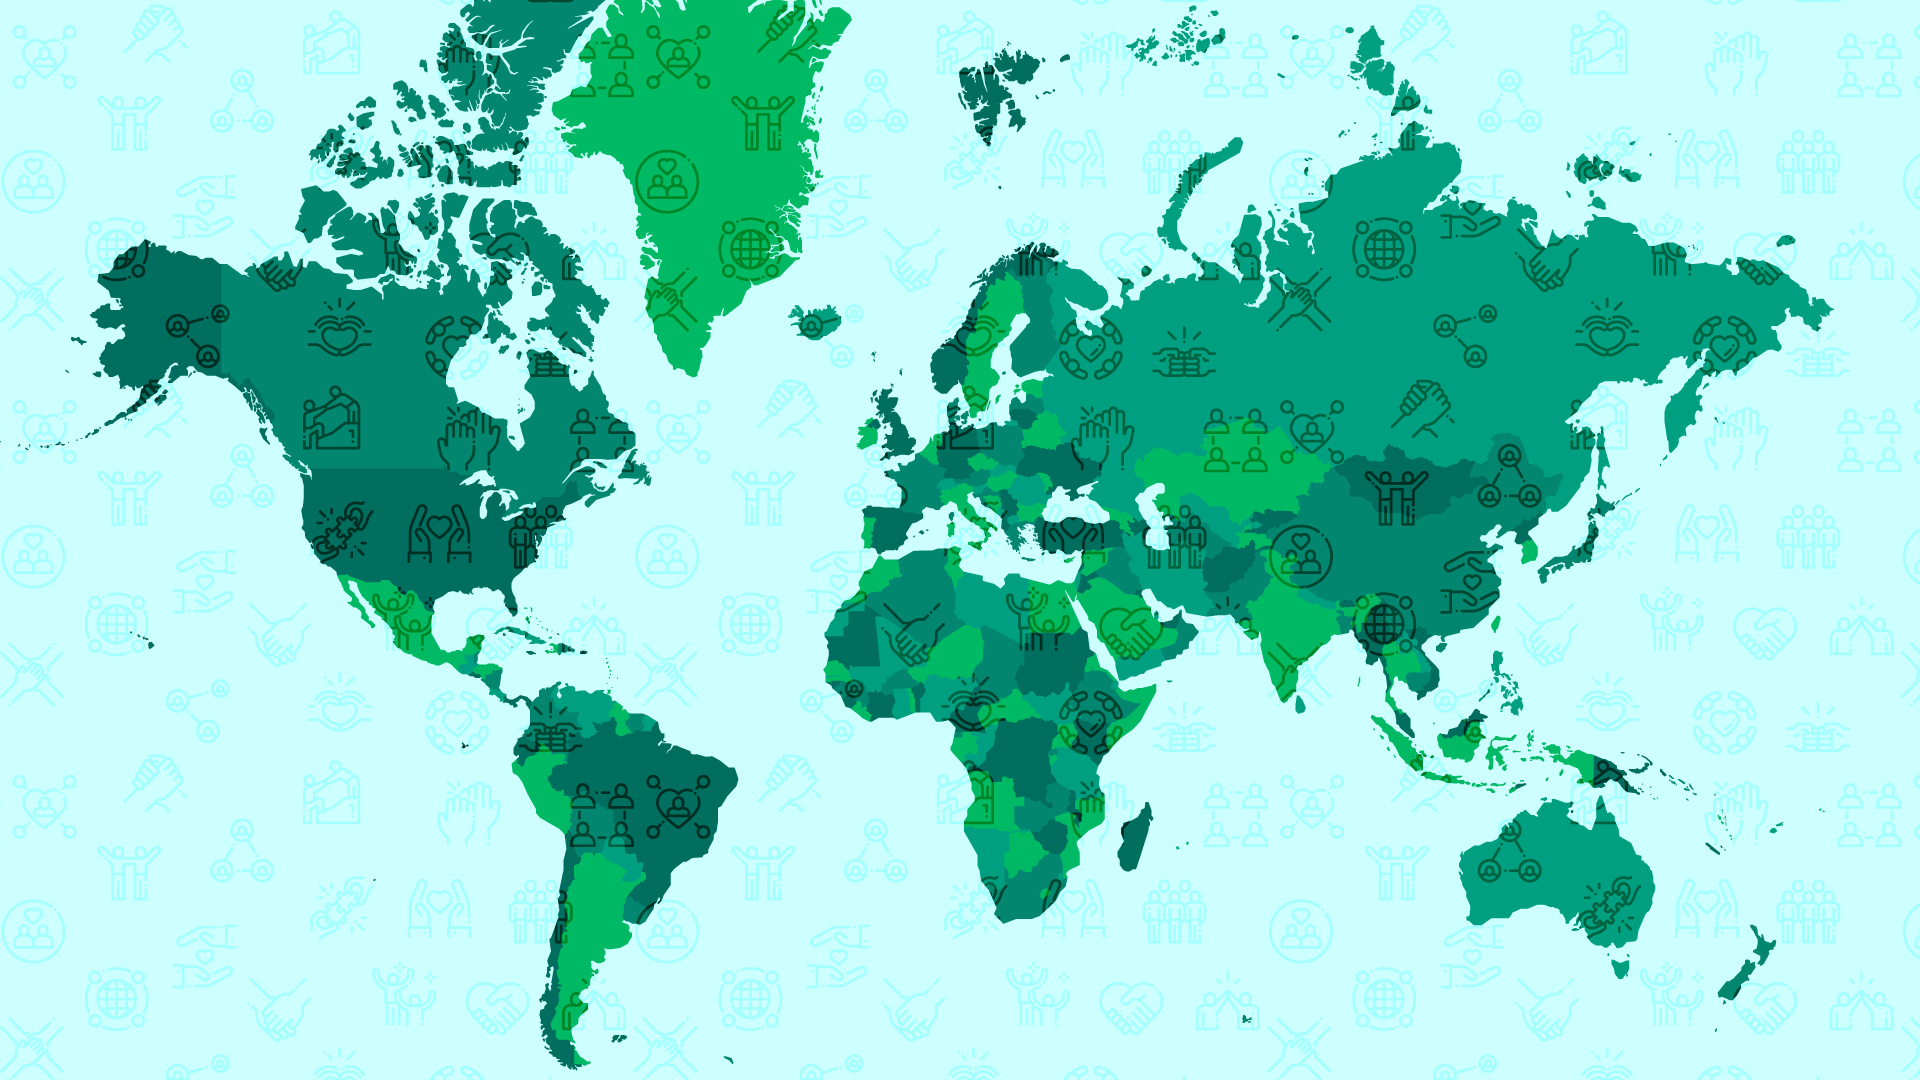 map of the world in green